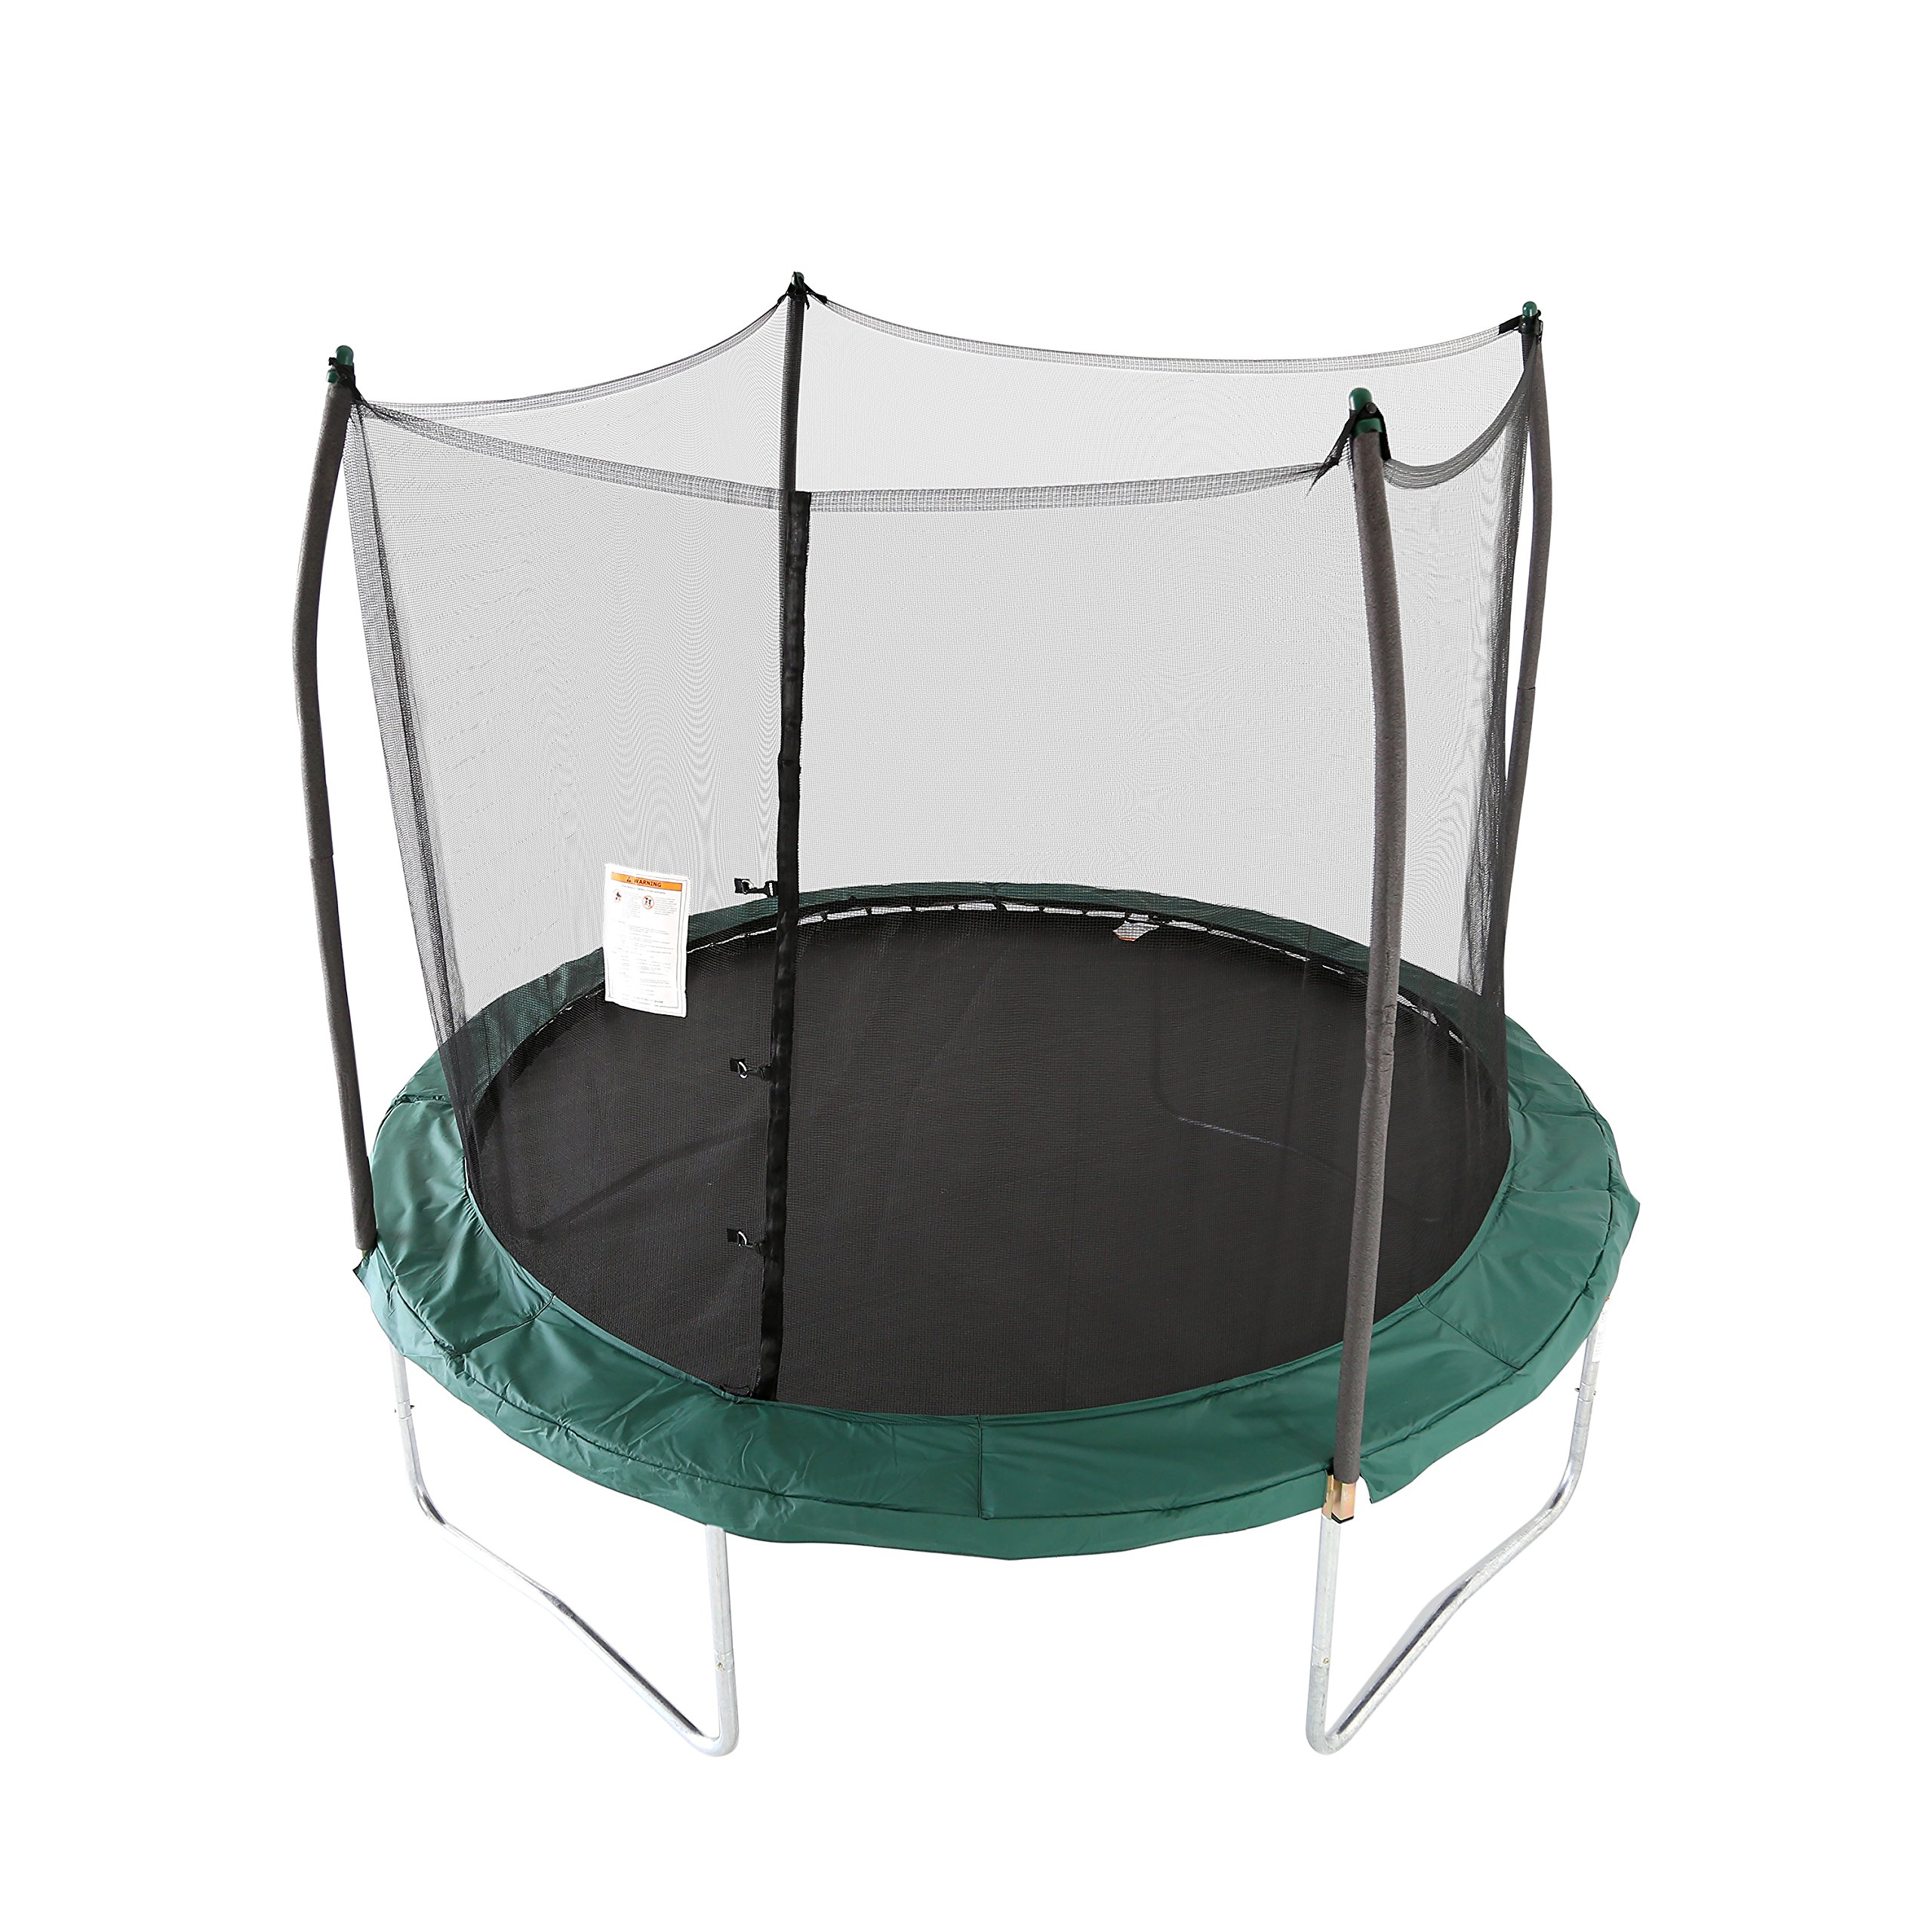 Skywalker Trampolines 10 -Foot Round Trampoline and Enclosure with spring, Green by Skywalker Trampolines